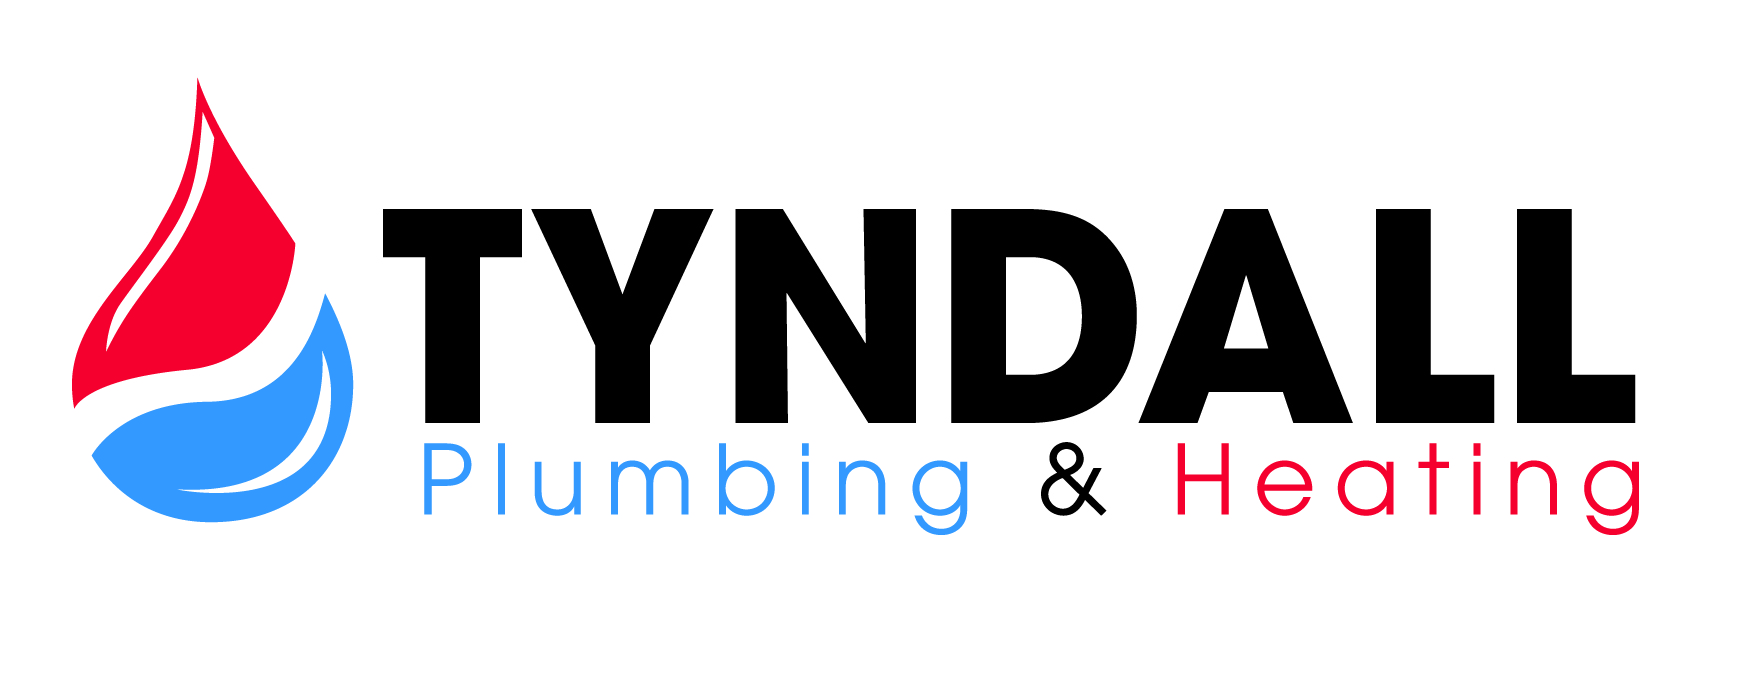 Logo Design by Rob King - Entry No. 2 in the Logo Design Contest Imaginative Logo Design for Tyndall Plumbing & Heating.